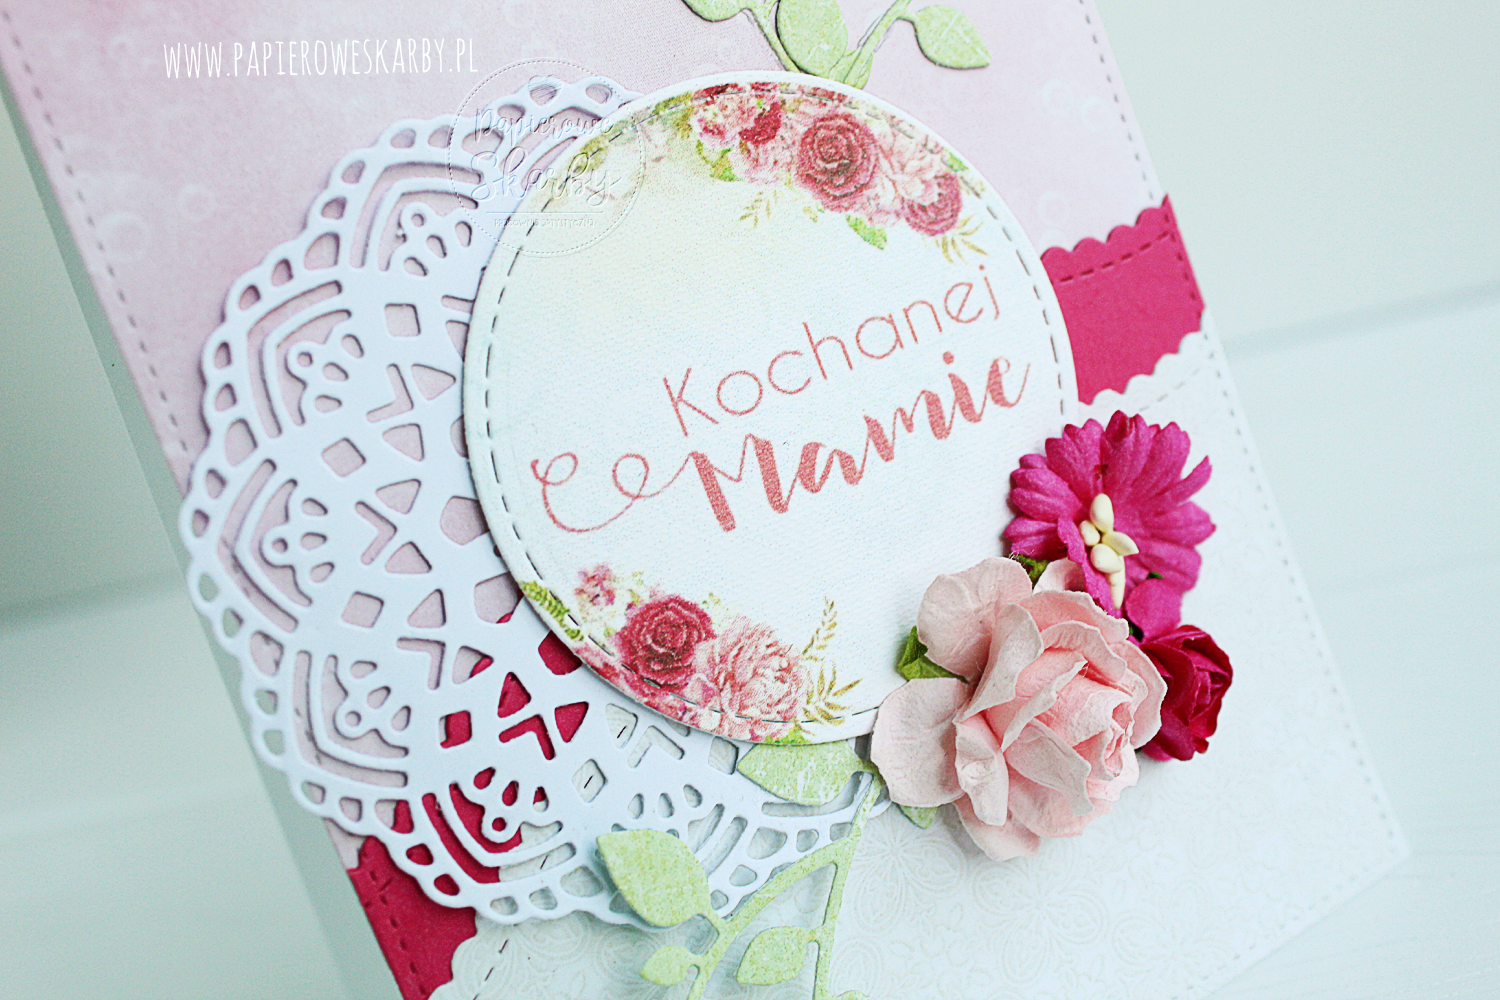 scrapbooking carmaking handmade rękodzieło ręcznie robiona kartka kartki dzień mamy matki prezent laurka mother's day mothers day cards card ilovedigi